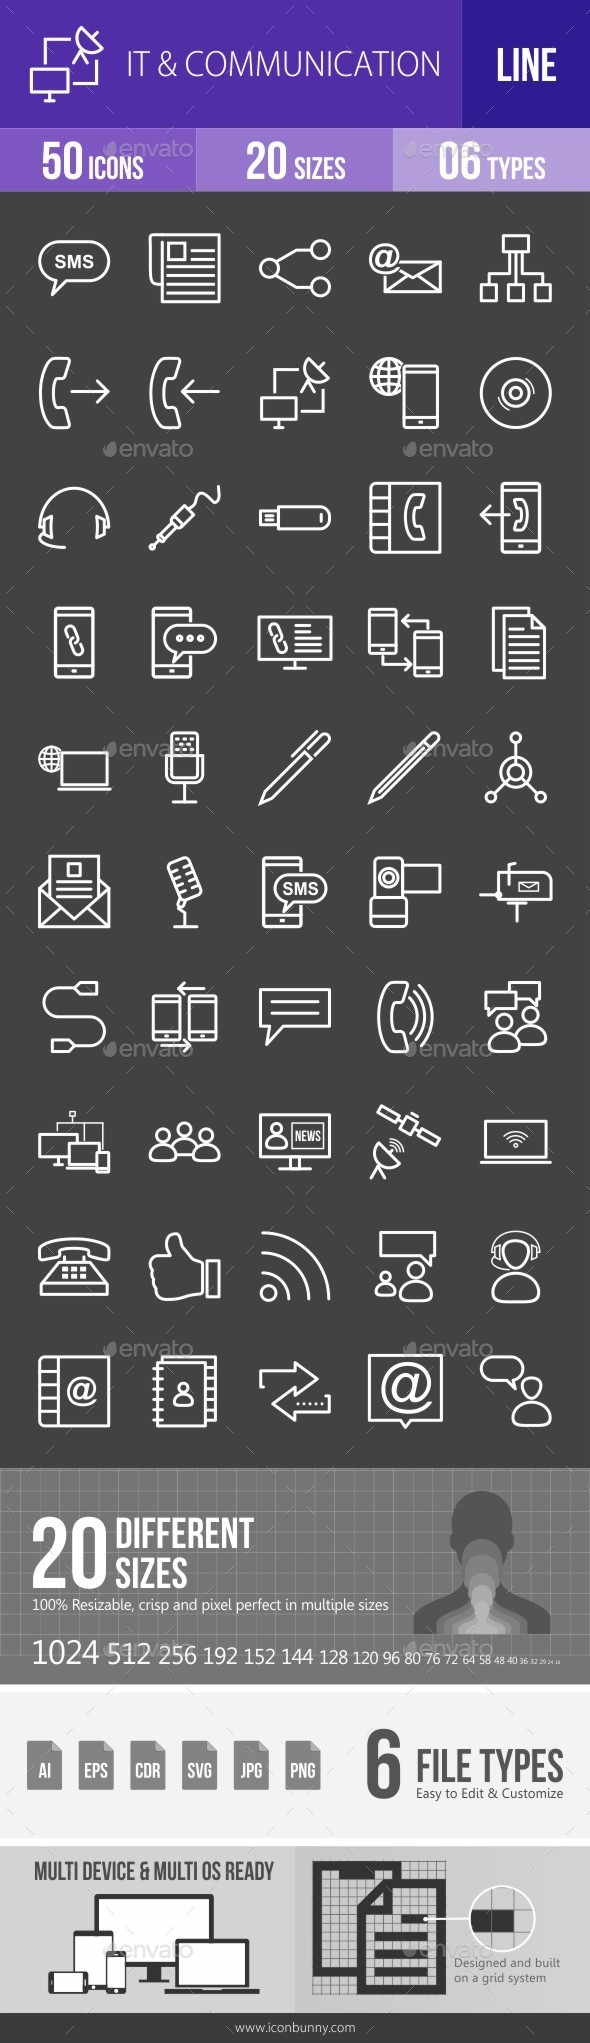 IT & Communication Line Inverted Icons - Icons